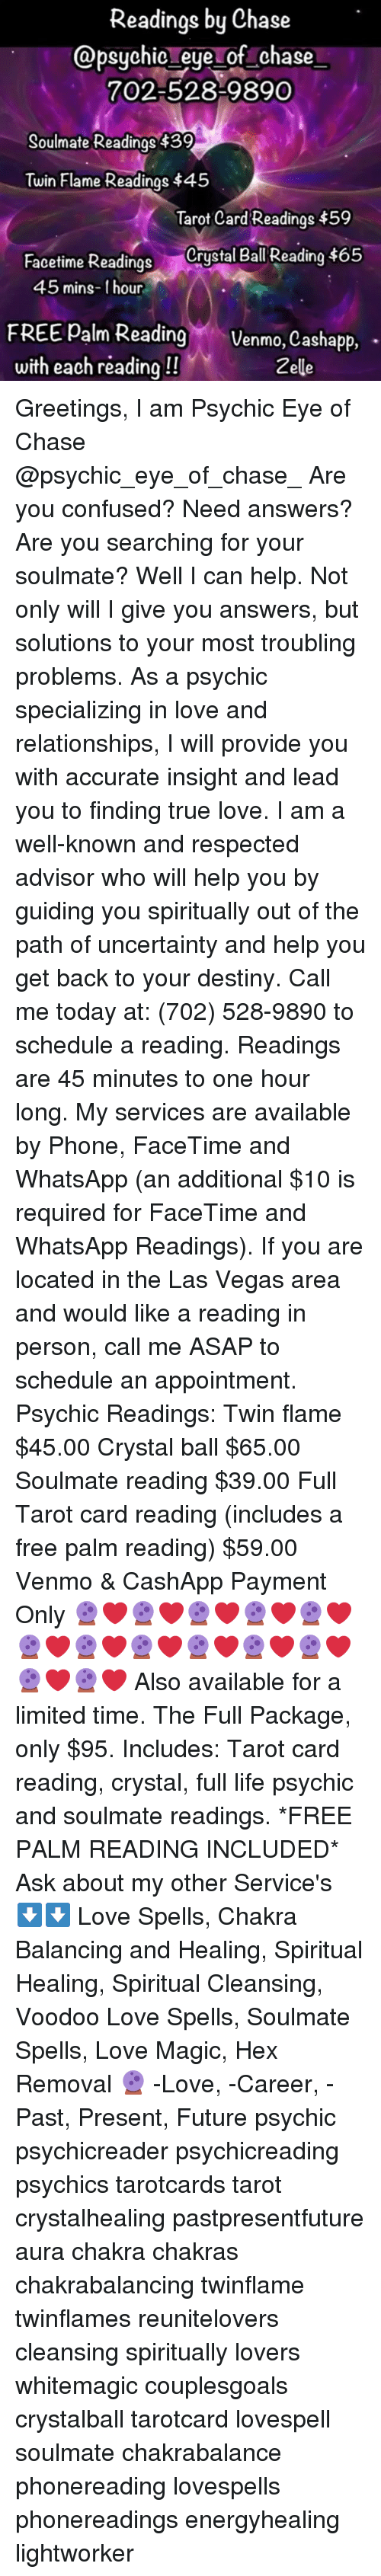 Confused, Destiny, and Facetime: Readings by Chase  @psychic eye of chase  702-528-9890  Soulmate Readings 439  Twin Flame Readings $45  Tarot Card Readings $59  Facetime Readings Crystal Bal Reading $65  45 mins- 1 hour  FREE Pam ReadingVenmo, Cashapp, -  with each reading!!  Zelle Greetings, I am Psychic Eye of Chase @psychic_eye_of_chase_ Are you confused? Need answers? Are you searching for your soulmate? Well I can help. Not only will I give you answers, but solutions to your most troubling problems. As a psychic specializing in love and relationships, I will provide you with accurate insight and lead you to finding true love. I am a well-known and respected advisor who will help you by guiding you spiritually out of the path of uncertainty and help you get back to your destiny. Call me today at: (702) 528-9890 to schedule a reading. Readings are 45 minutes to one hour long. My services are available by Phone, FaceTime and WhatsApp (an additional $10 is required for FaceTime and WhatsApp Readings). If you are located in the Las Vegas area and would like a reading in person, call me ASAP to schedule an appointment. Psychic Readings: Twin flame $45.00 Crystal ball $65.00 Soulmate reading $39.00 Full Tarot card reading (includes a free palm reading) $59.00 Venmo & CashApp Payment Only 🔮❤🔮❤🔮❤🔮❤🔮❤🔮❤🔮❤🔮❤🔮❤🔮❤🔮❤🔮❤🔮❤ Also available for a limited time. The Full Package, only $95. Includes: Tarot card reading, crystal, full life psychic and soulmate readings. *FREE PALM READING INCLUDED* Ask about my other Service's ⬇⬇ Love Spells, Chakra Balancing and Healing, Spiritual Healing, Spiritual Cleansing, Voodoo Love Spells, Soulmate Spells, Love Magic, Hex Removal 🔮 -Love, -Career, -Past, Present, Future psychic psychicreader psychicreading psychics tarotcards tarot crystalhealing pastpresentfuture aura chakra chakras chakrabalancing twinflame twinflames reunitelovers cleansing spiritually lovers whitemagic couplesgoals crystalball tarotcard lovespell soulmate chakrabalance p